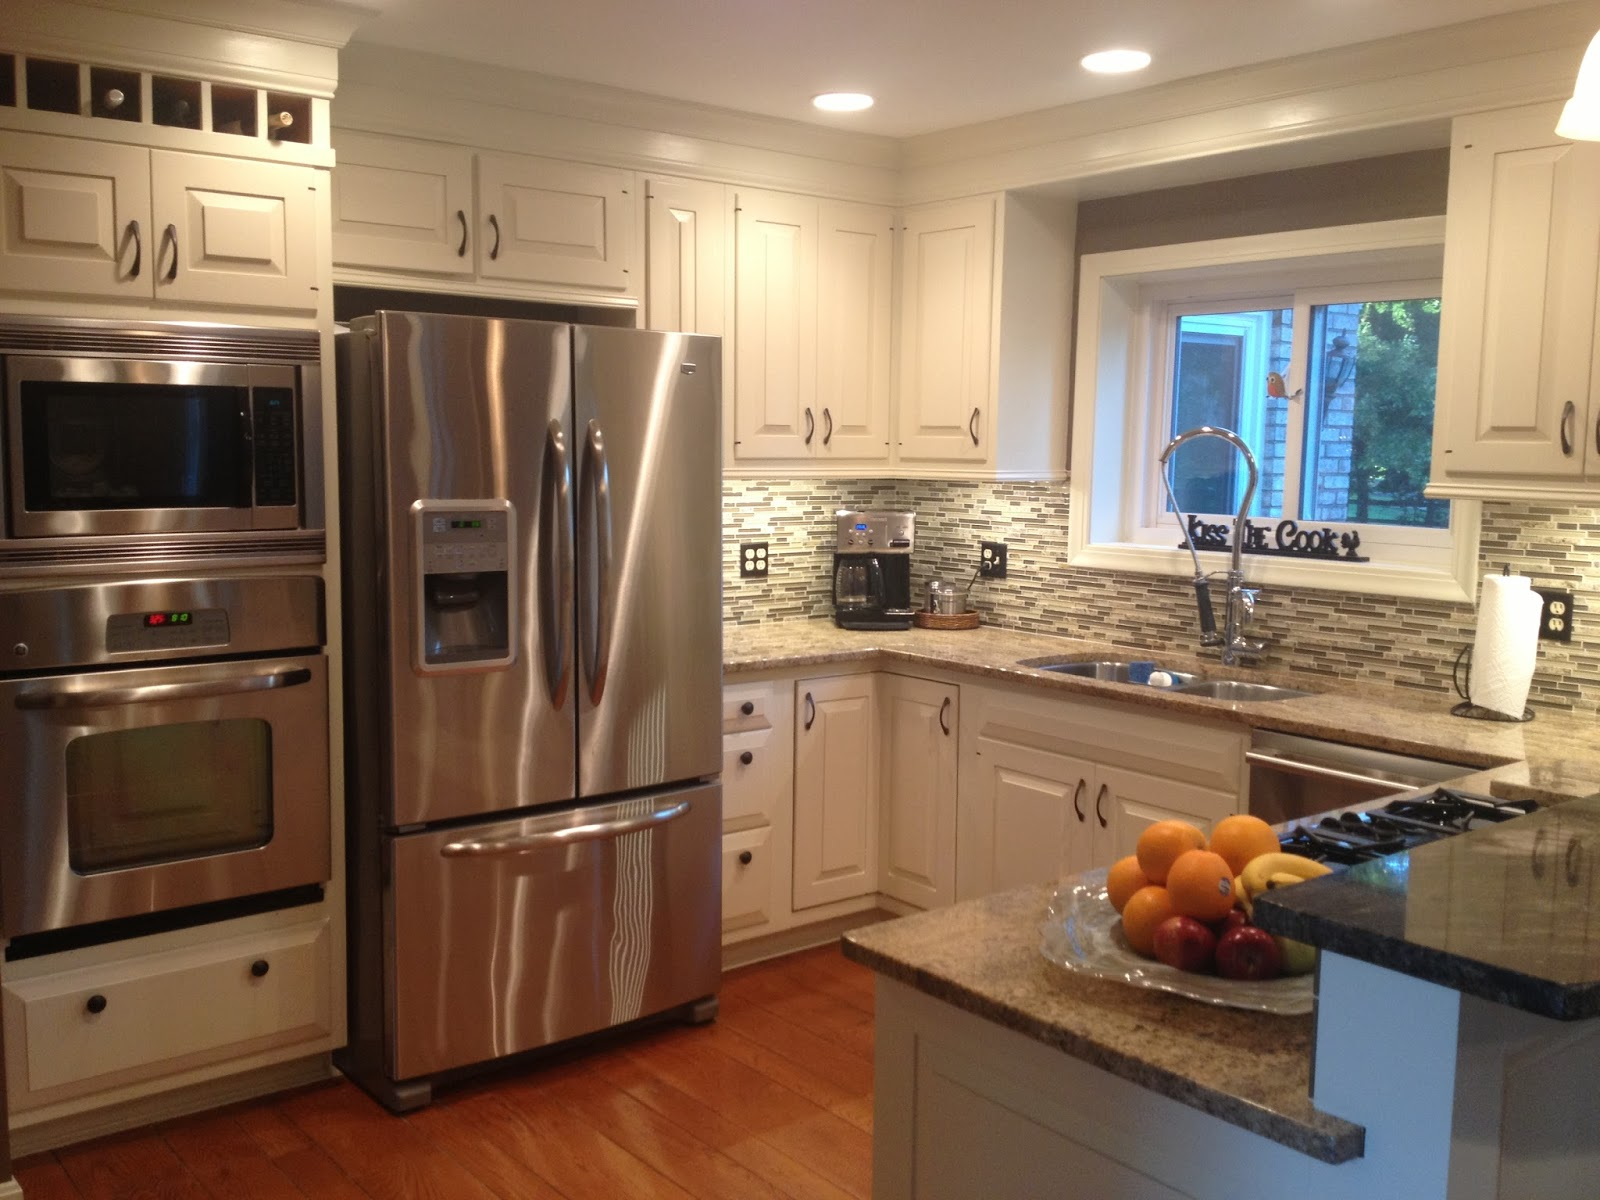 Four seasons style the new kitchen remodel on a budget for New kitchen cabinets